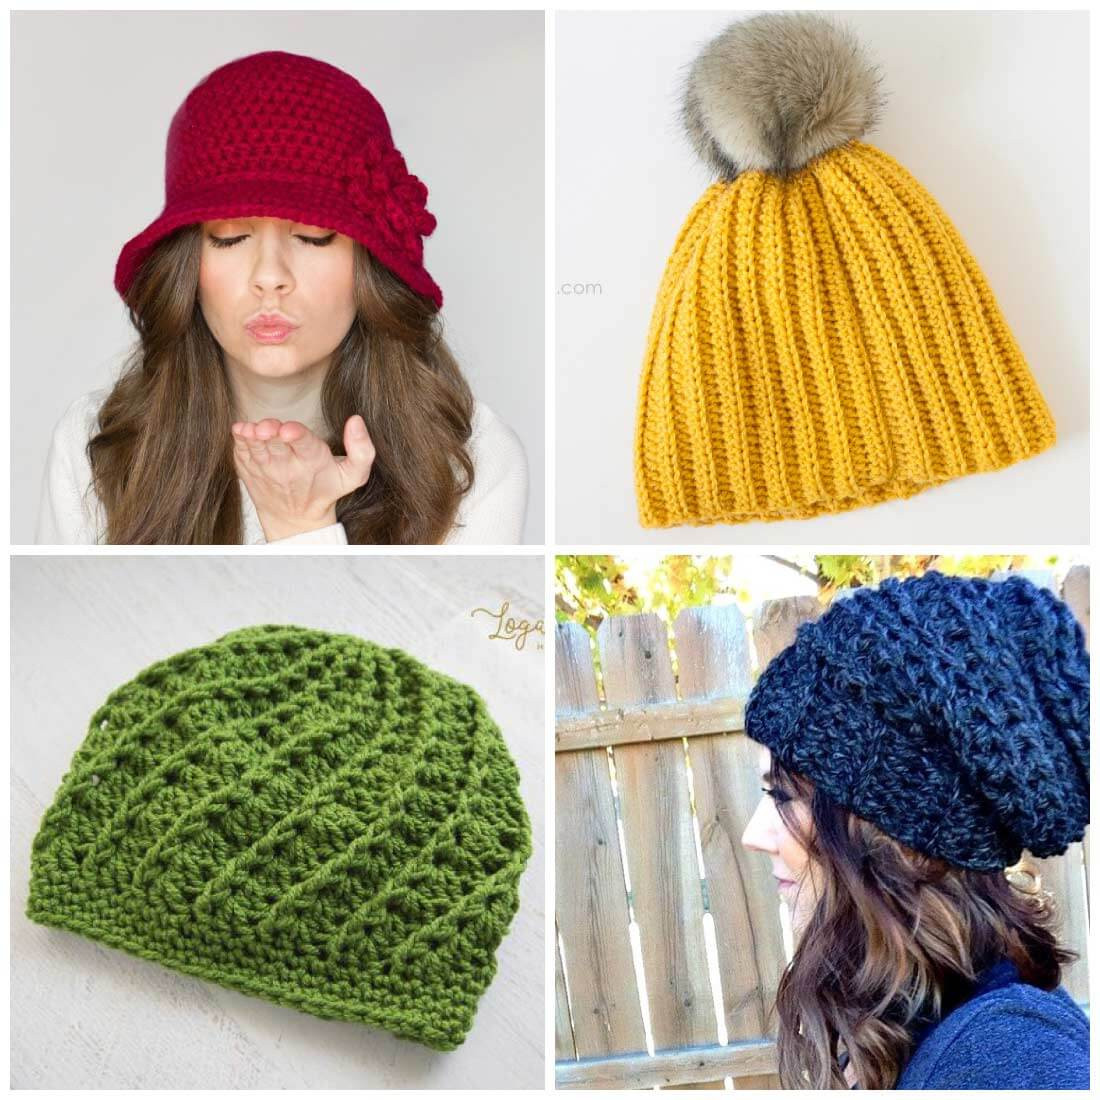 Awesome Free Crochet Hat Patterns Daisy Cottage Designs Crochet Stitches for Hats Of Lovely 46 Models Crochet Stitches for Hats